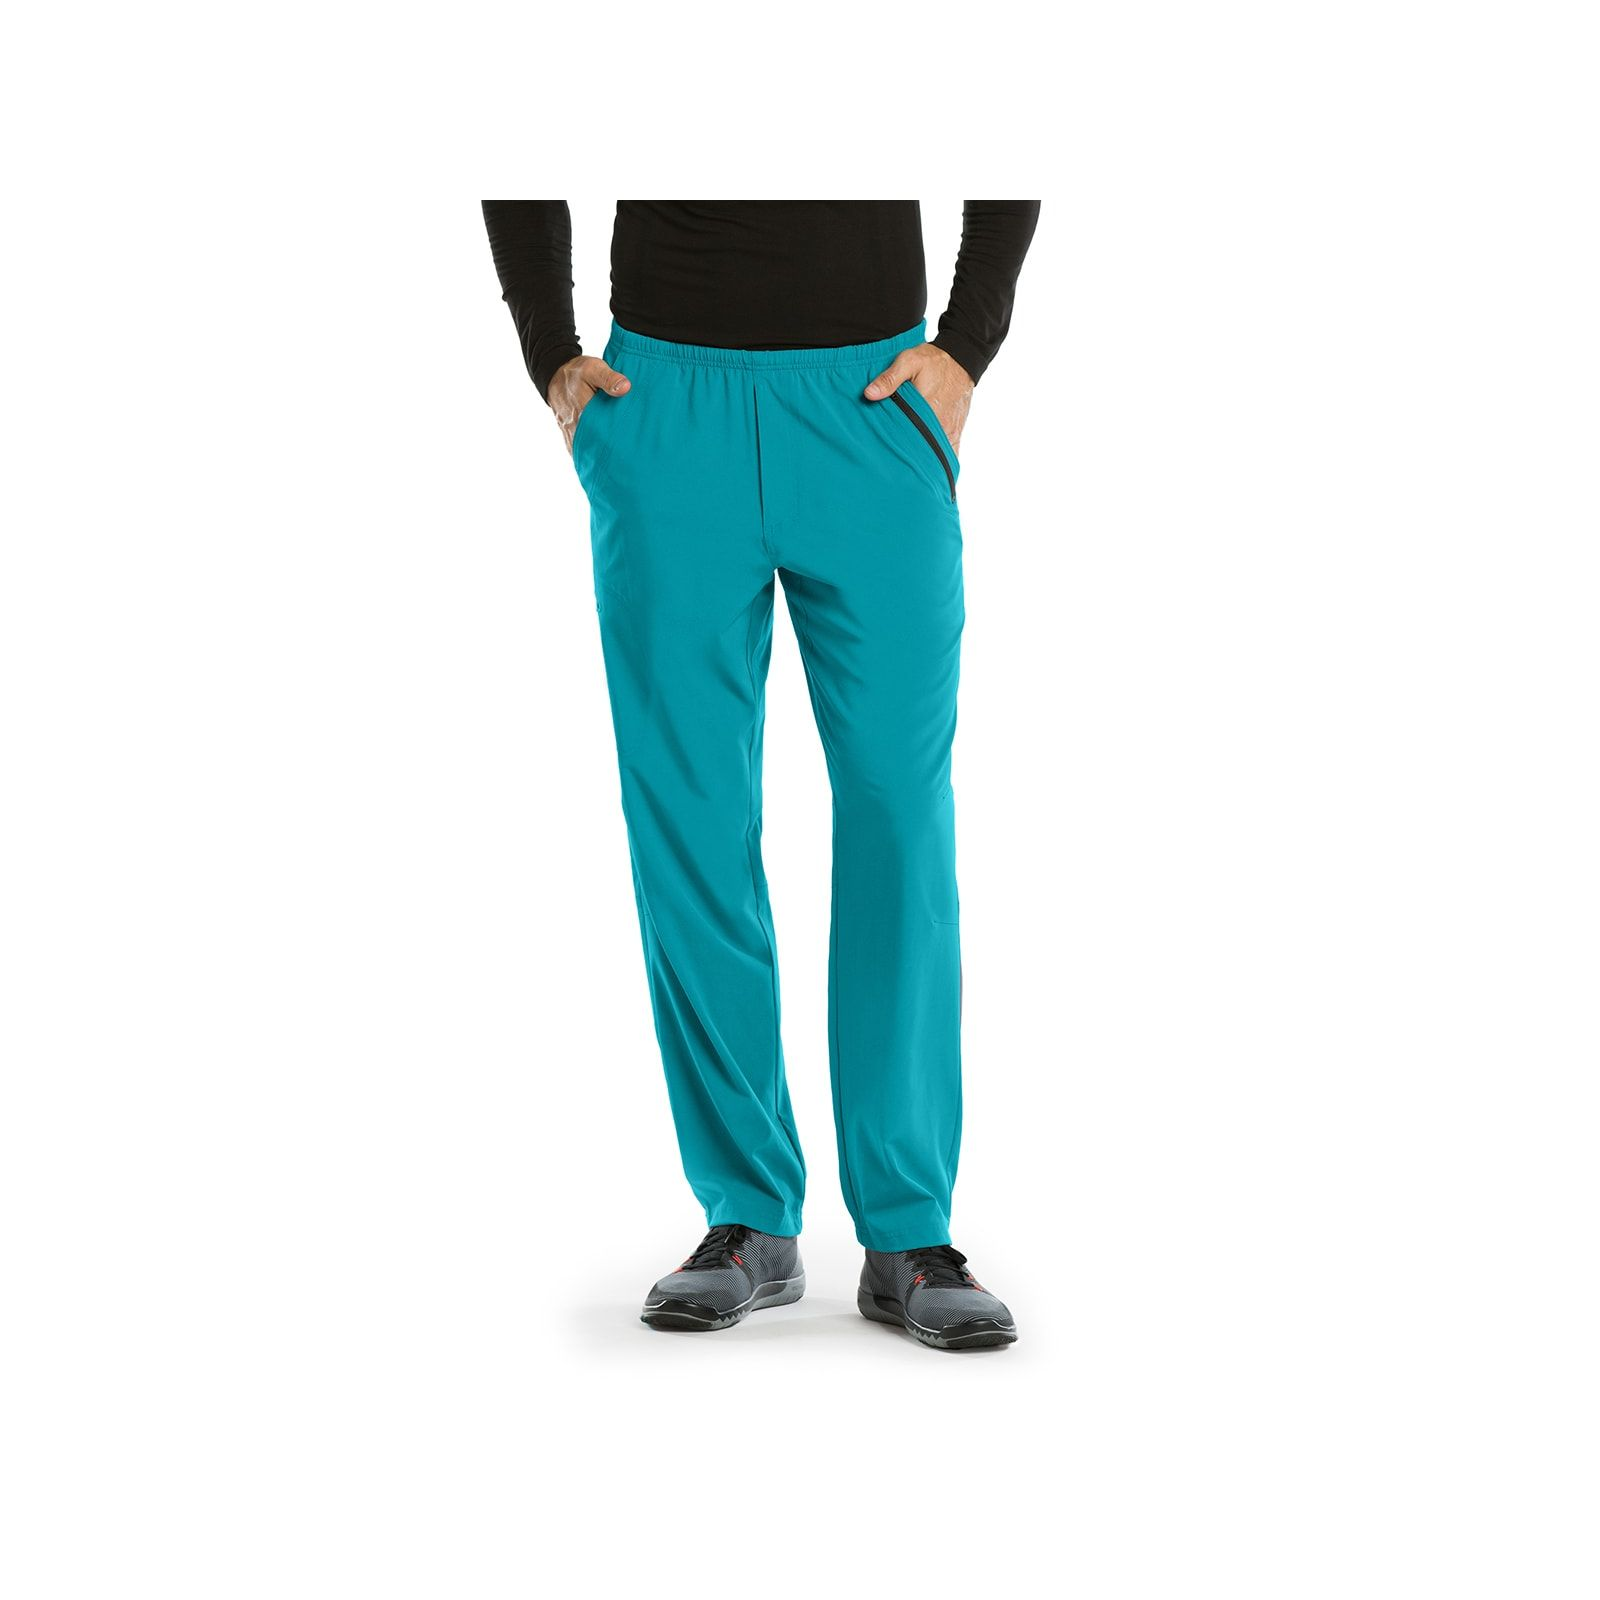 Pantalon médical homme, couleur teal blue vue de face Barco One (0217)